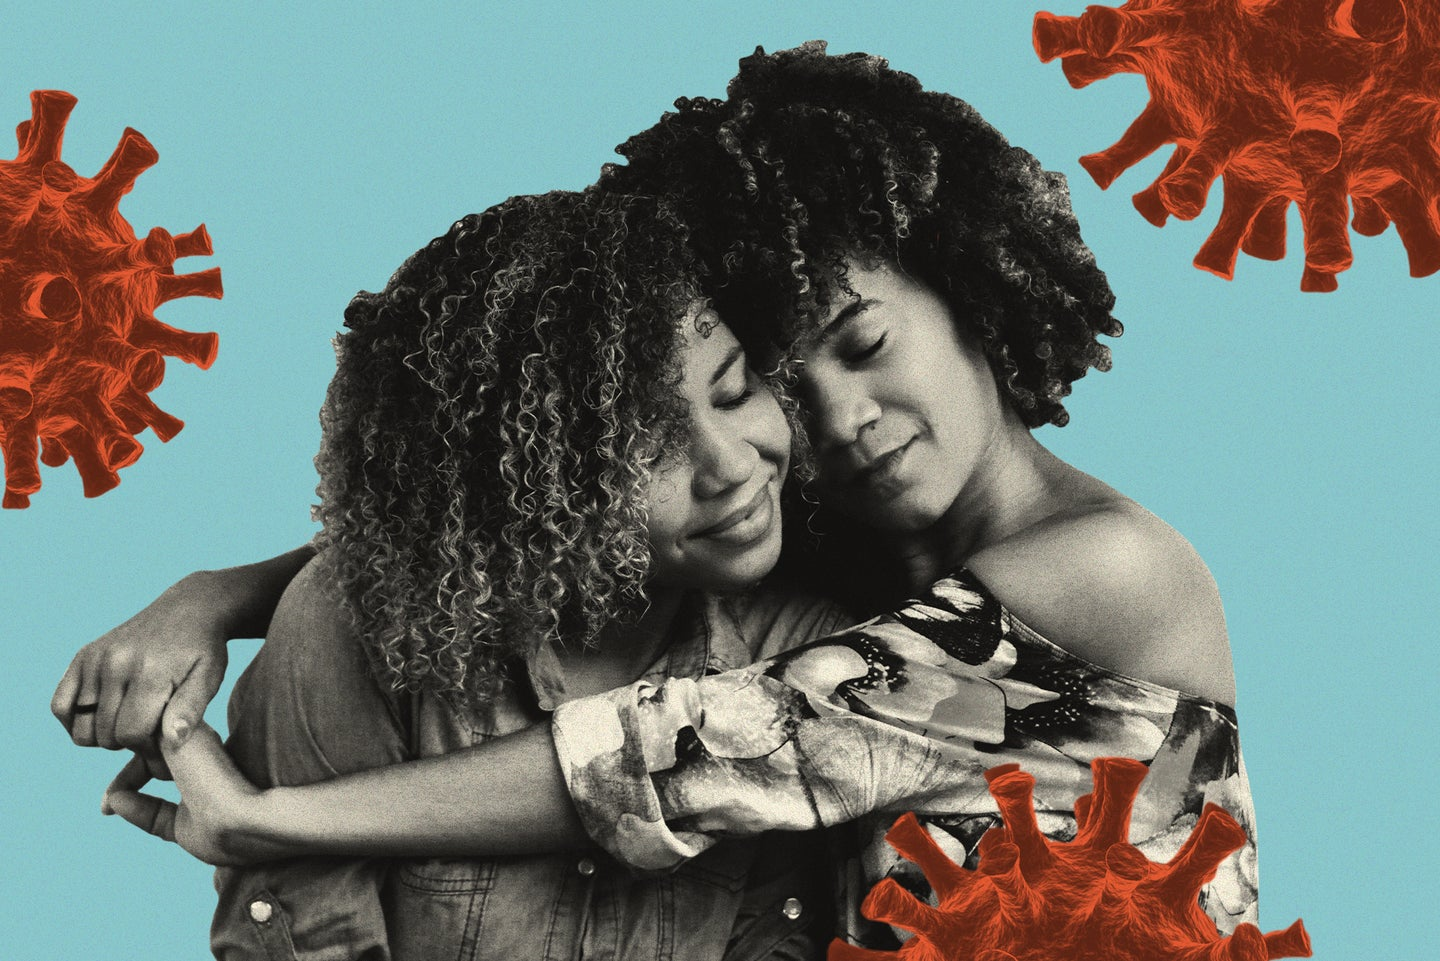 Two Black women with curly hair hug against a blue background featuring red coronavirus illustrations